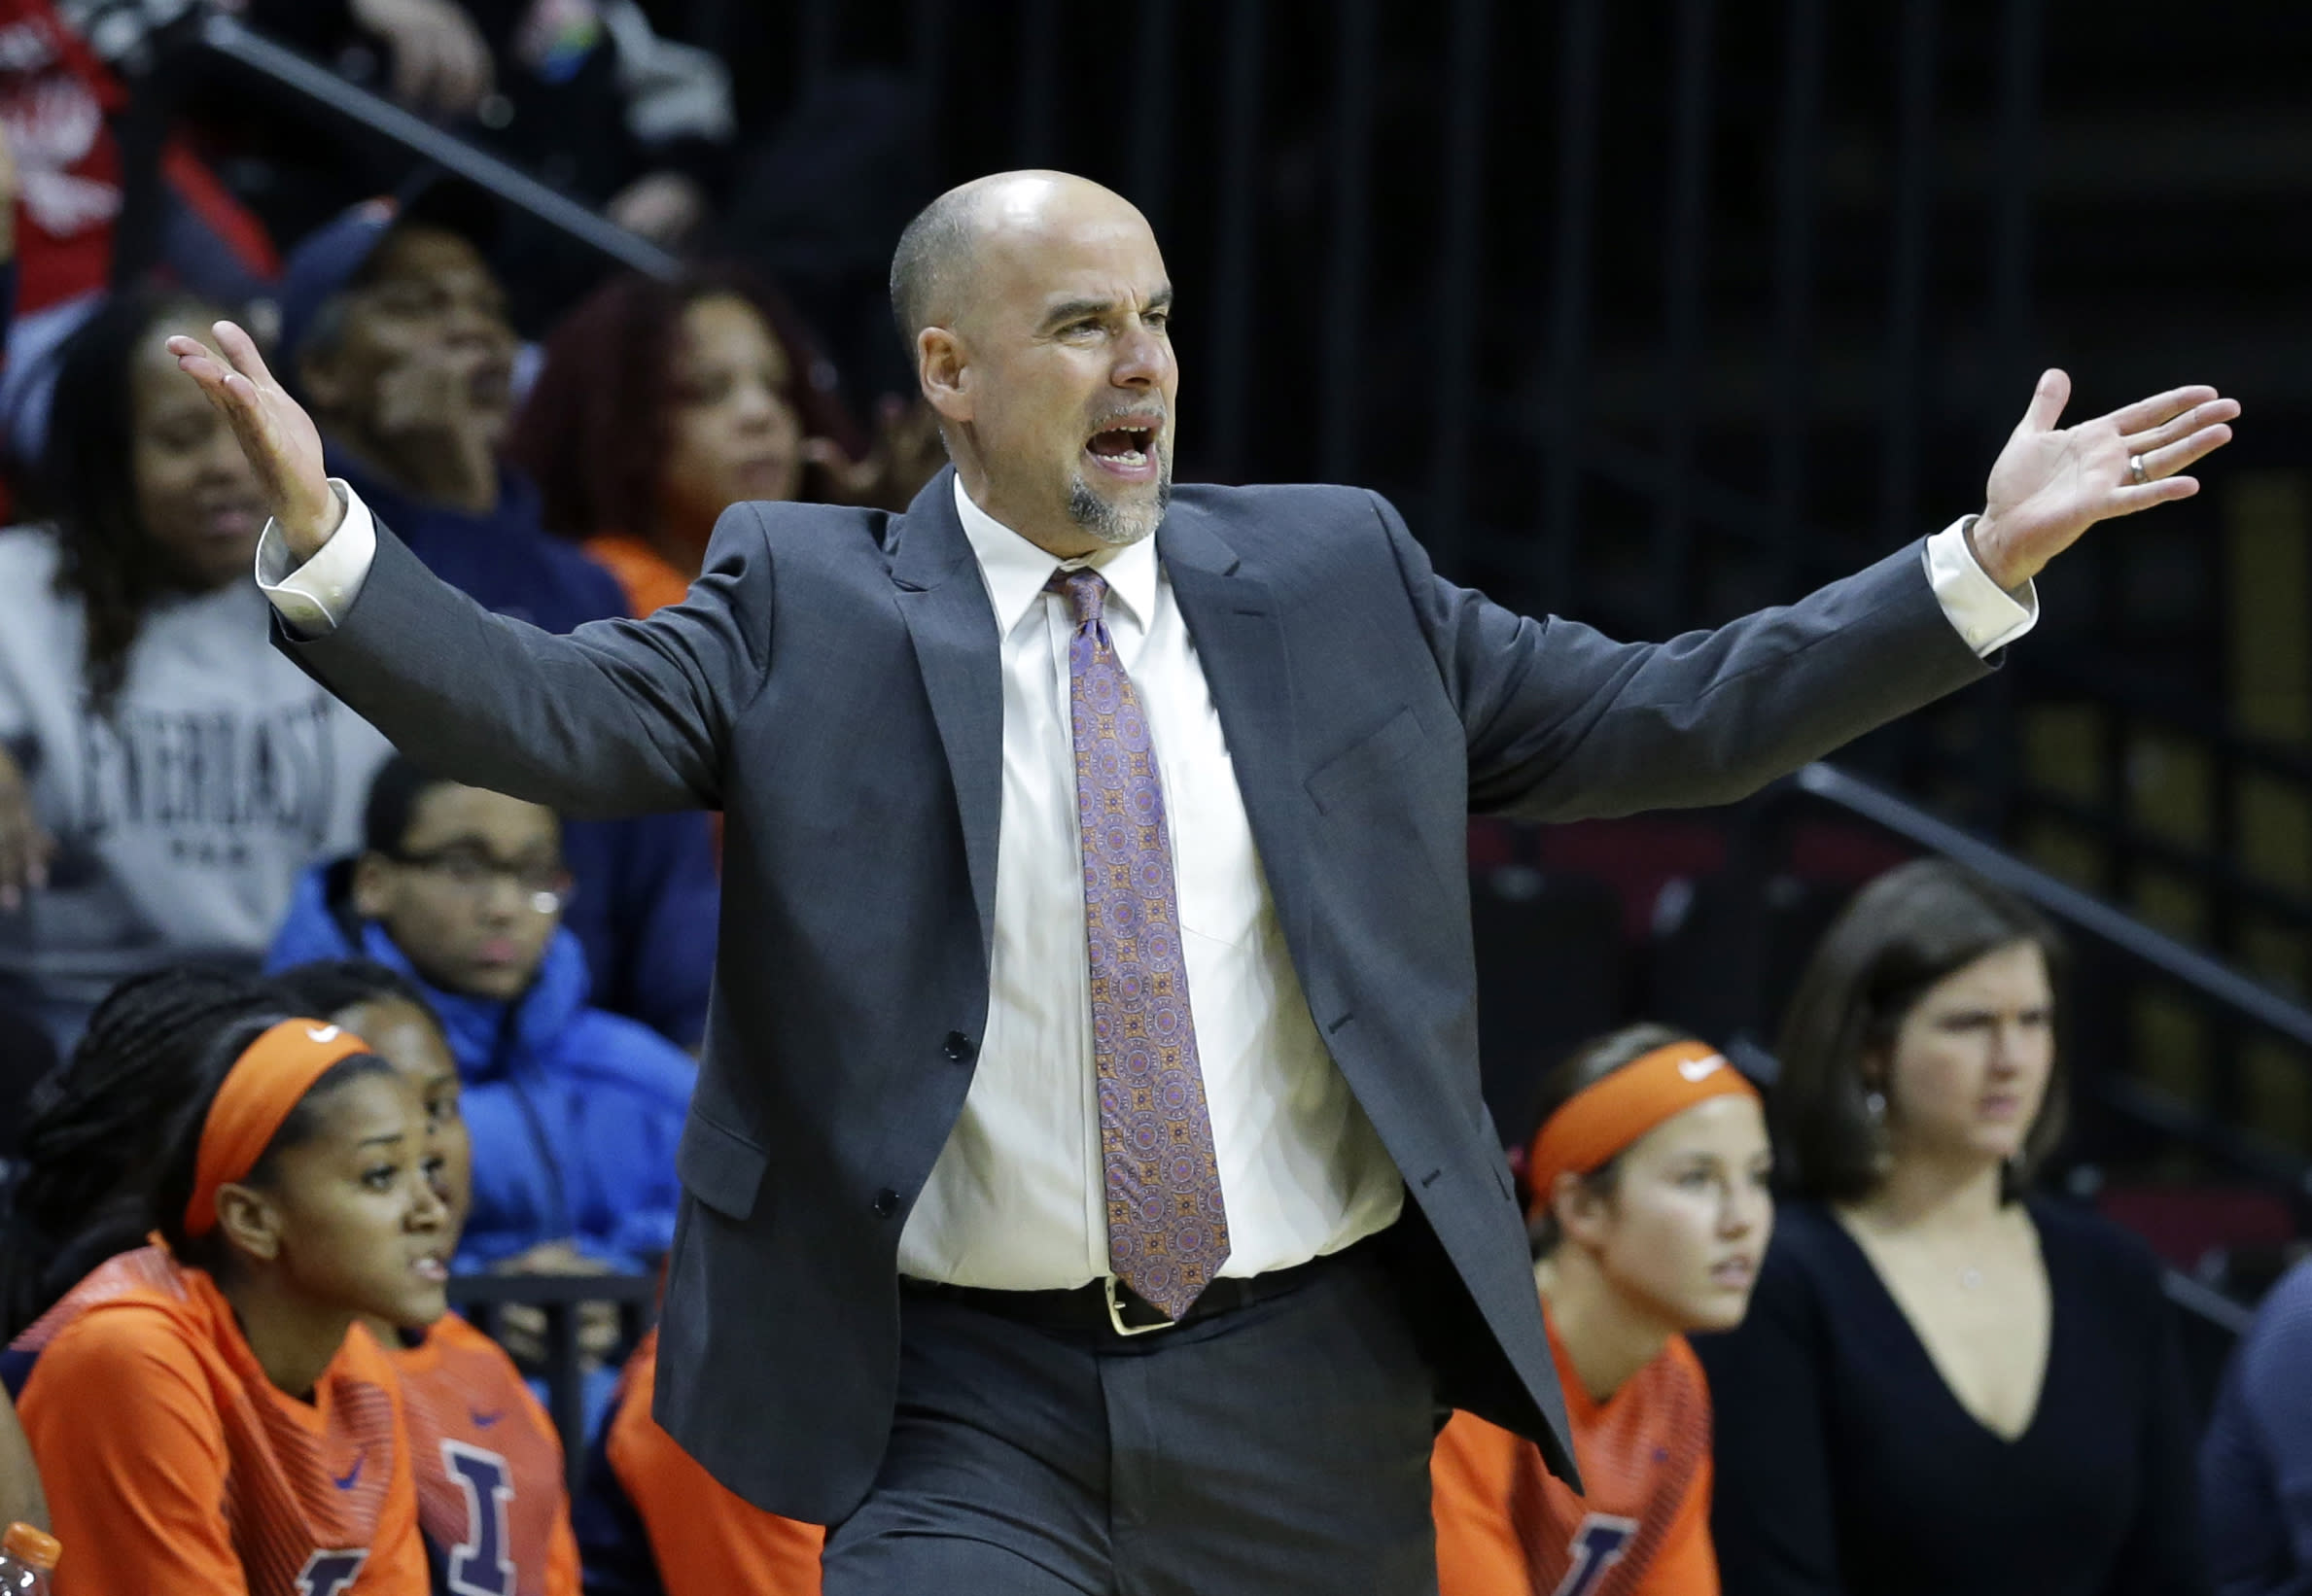 New investigation launched into Illinois player allegations